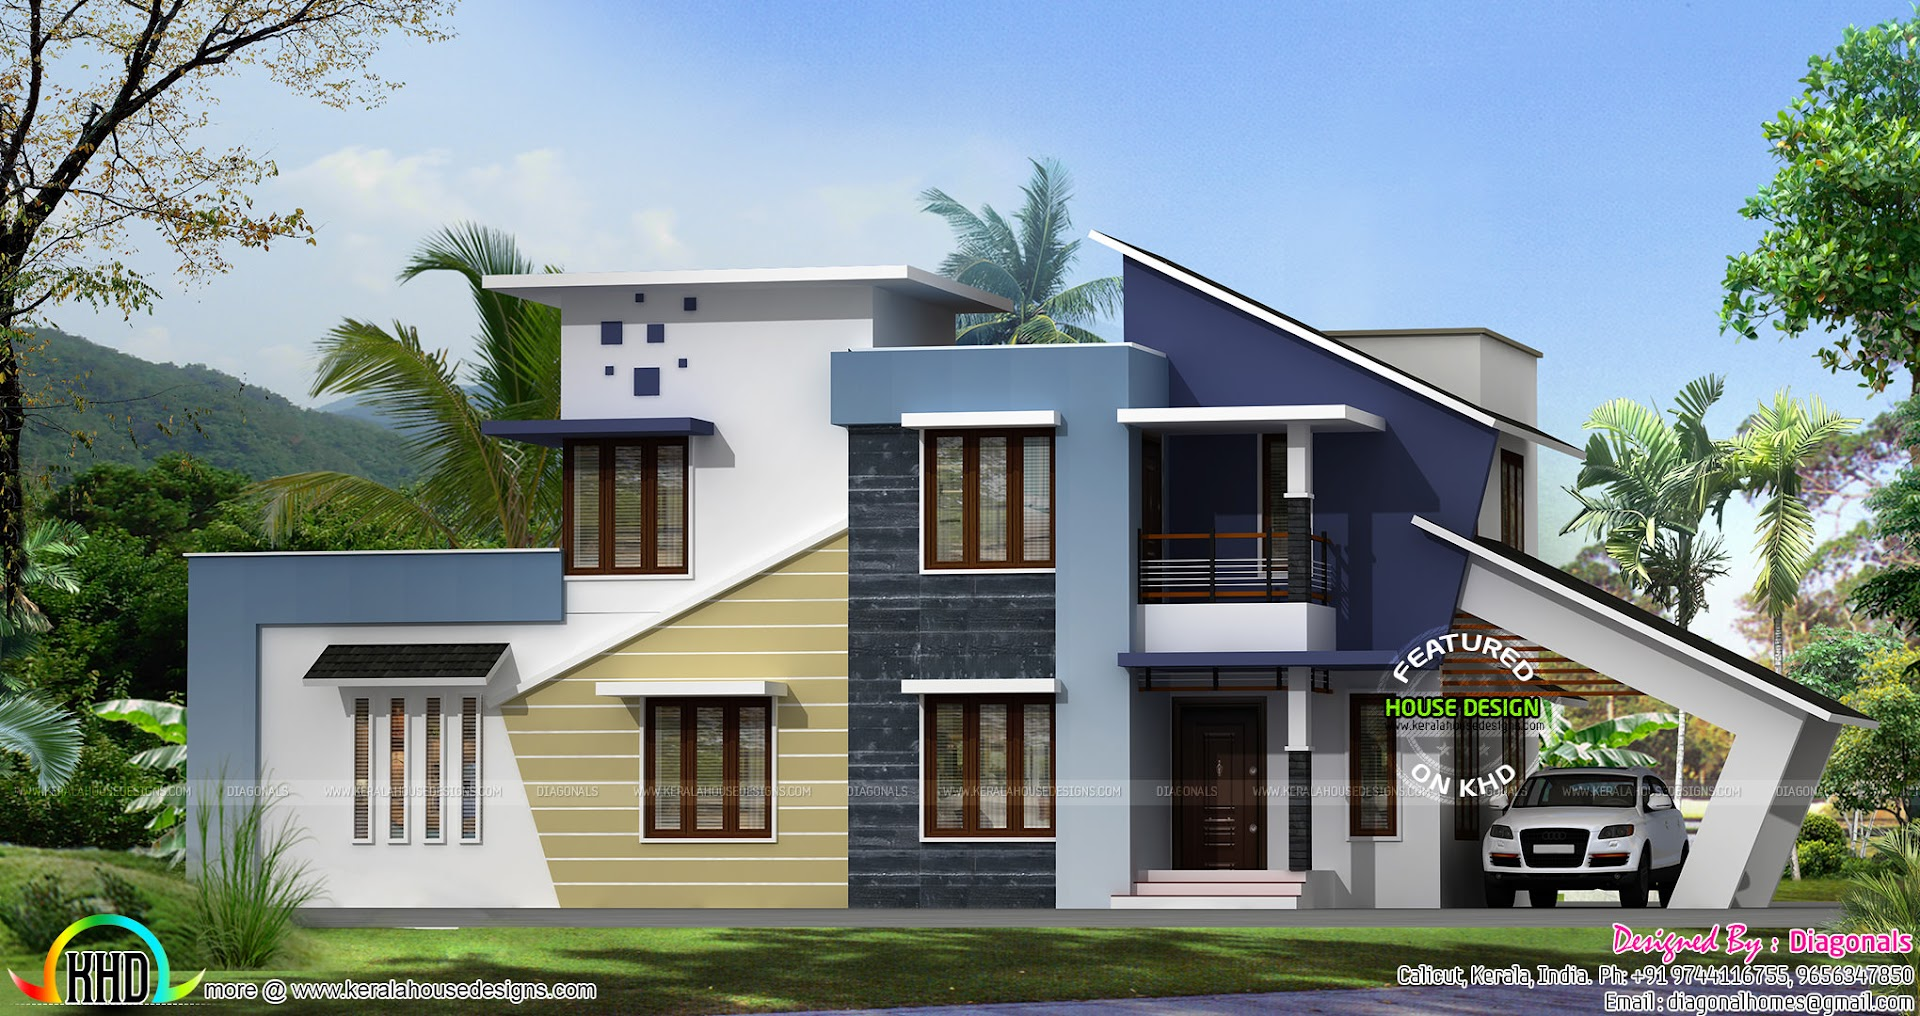 New generation home design - Kerala home design and floor ...